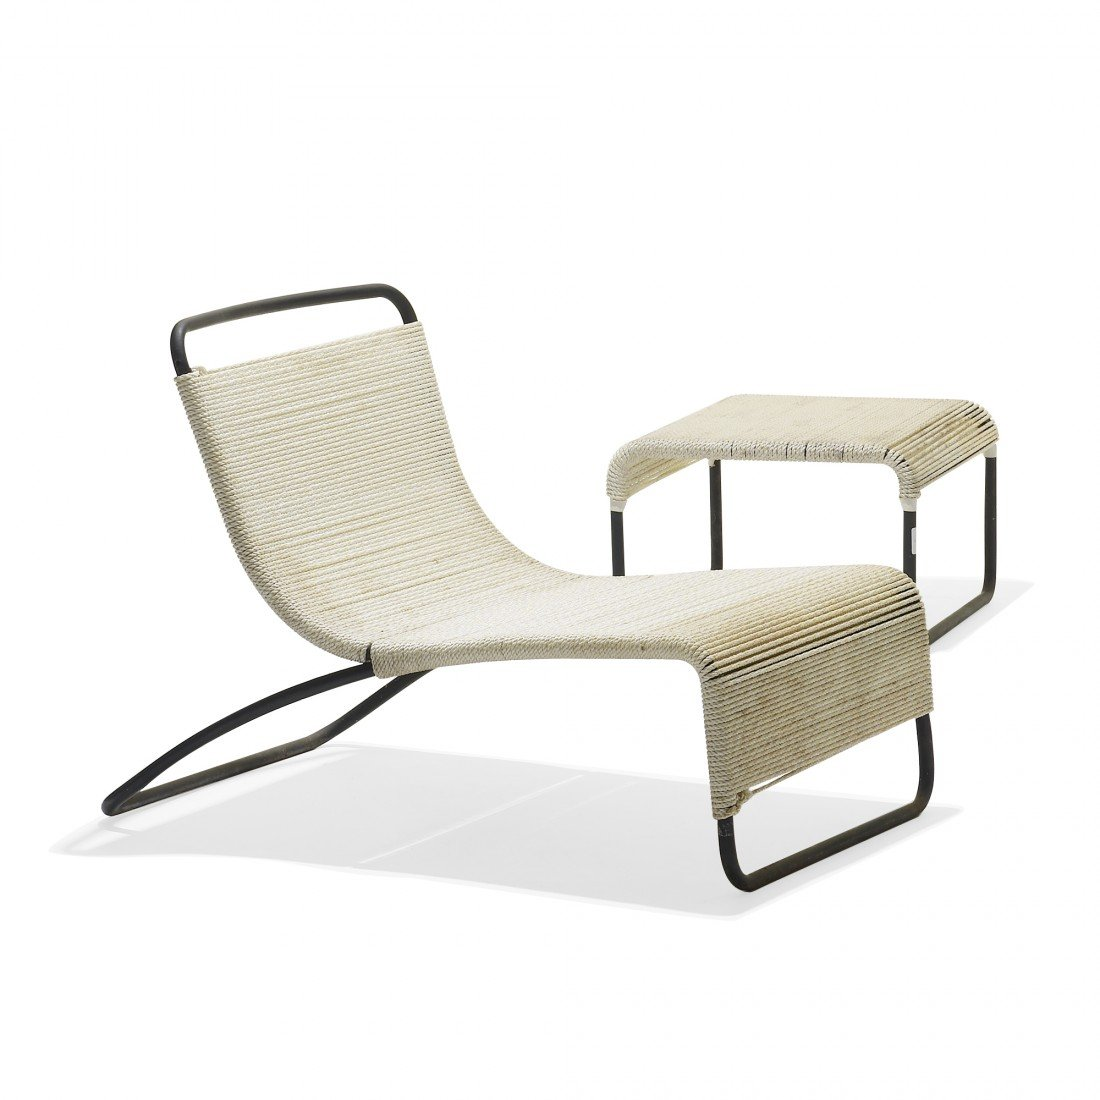 179: Van Keppel and Green lounge chairs and ottomans